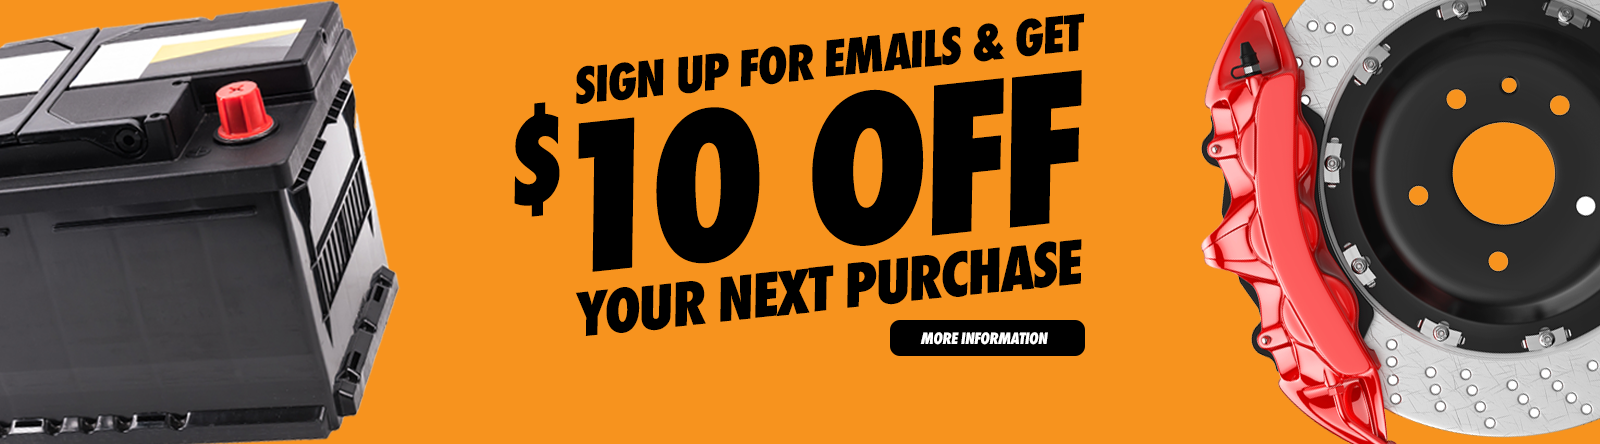 Sign Up for Emails and get $10 Off your next purchase